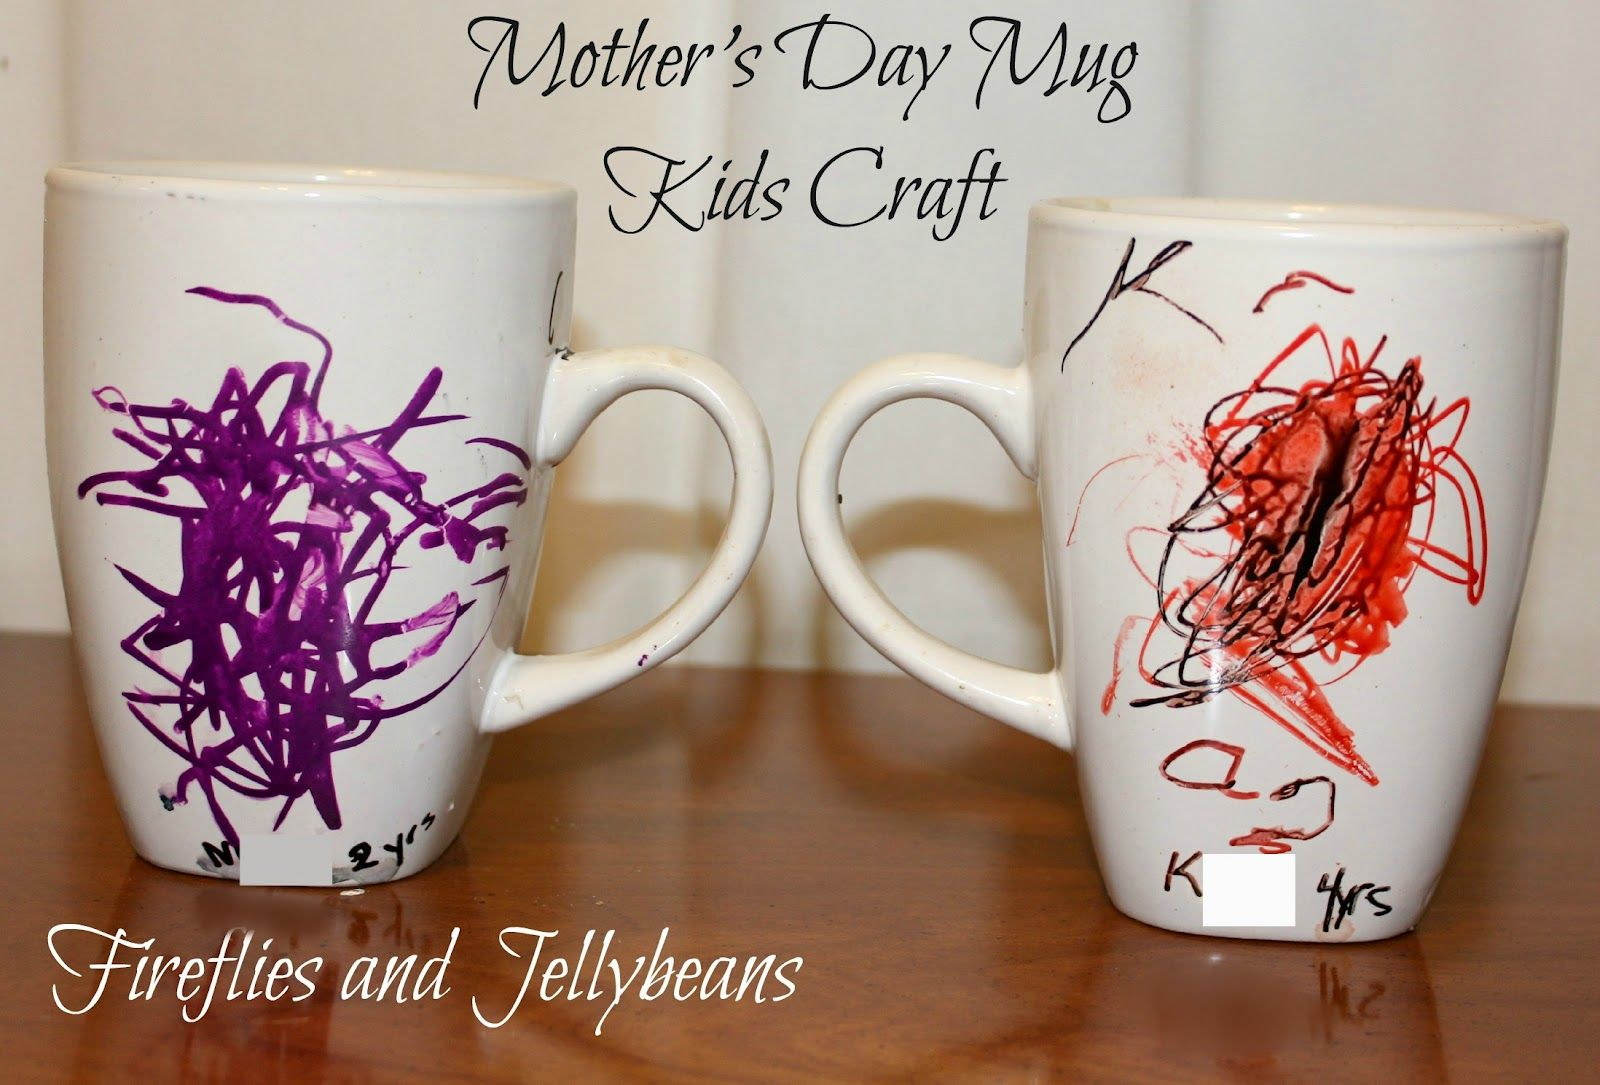 45+ Mothers day crafts 5 minute crafts info